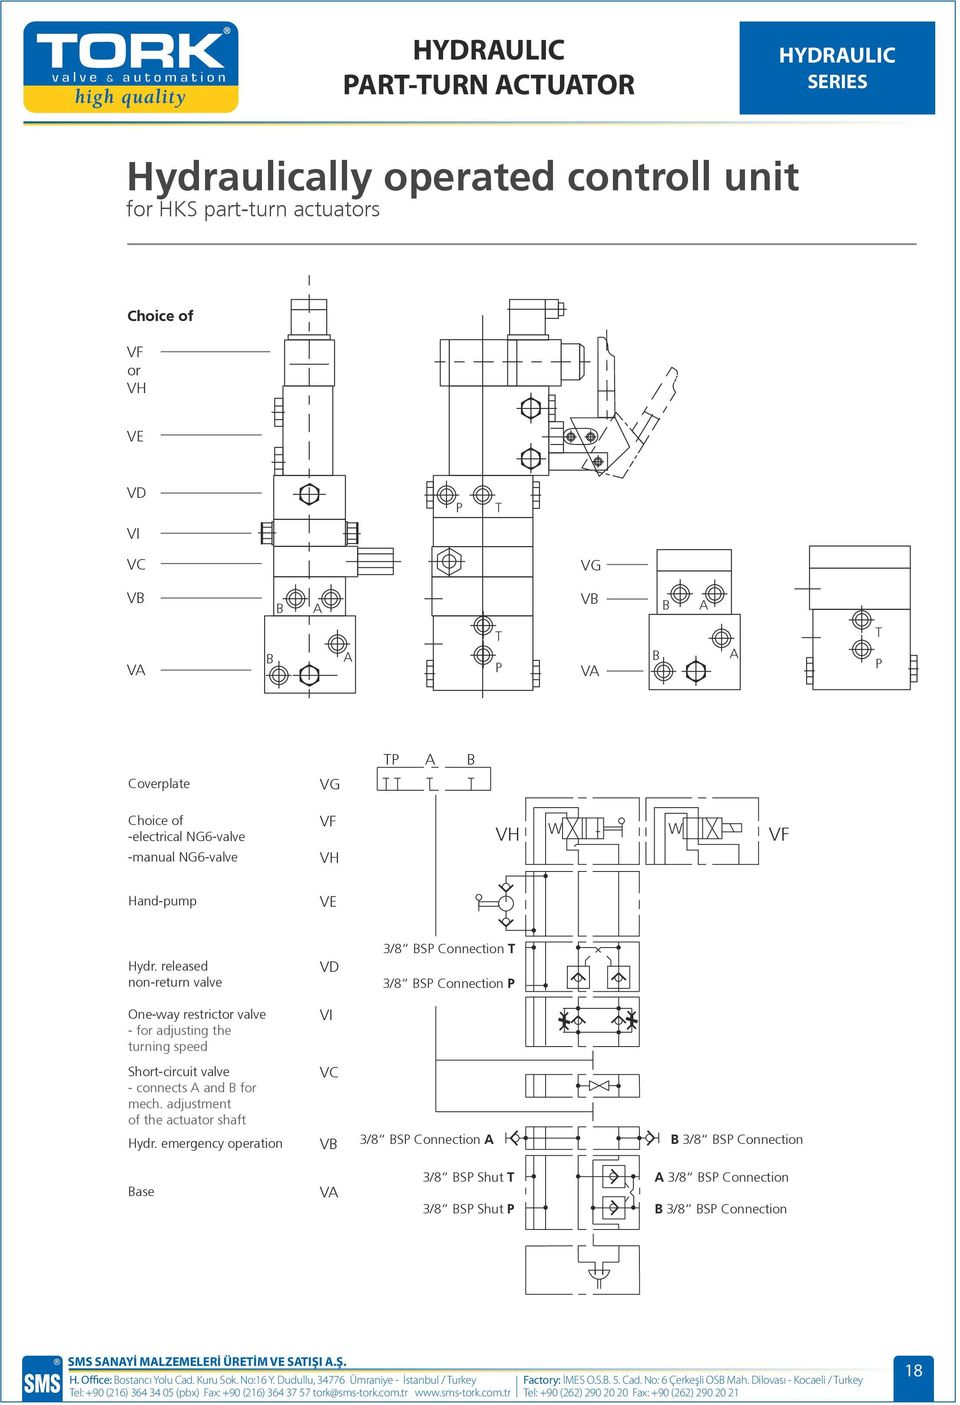 released non-return valve One-way restrictor valve - for adjusting the turning speed Short-circuit valve - connects A and B for mech.